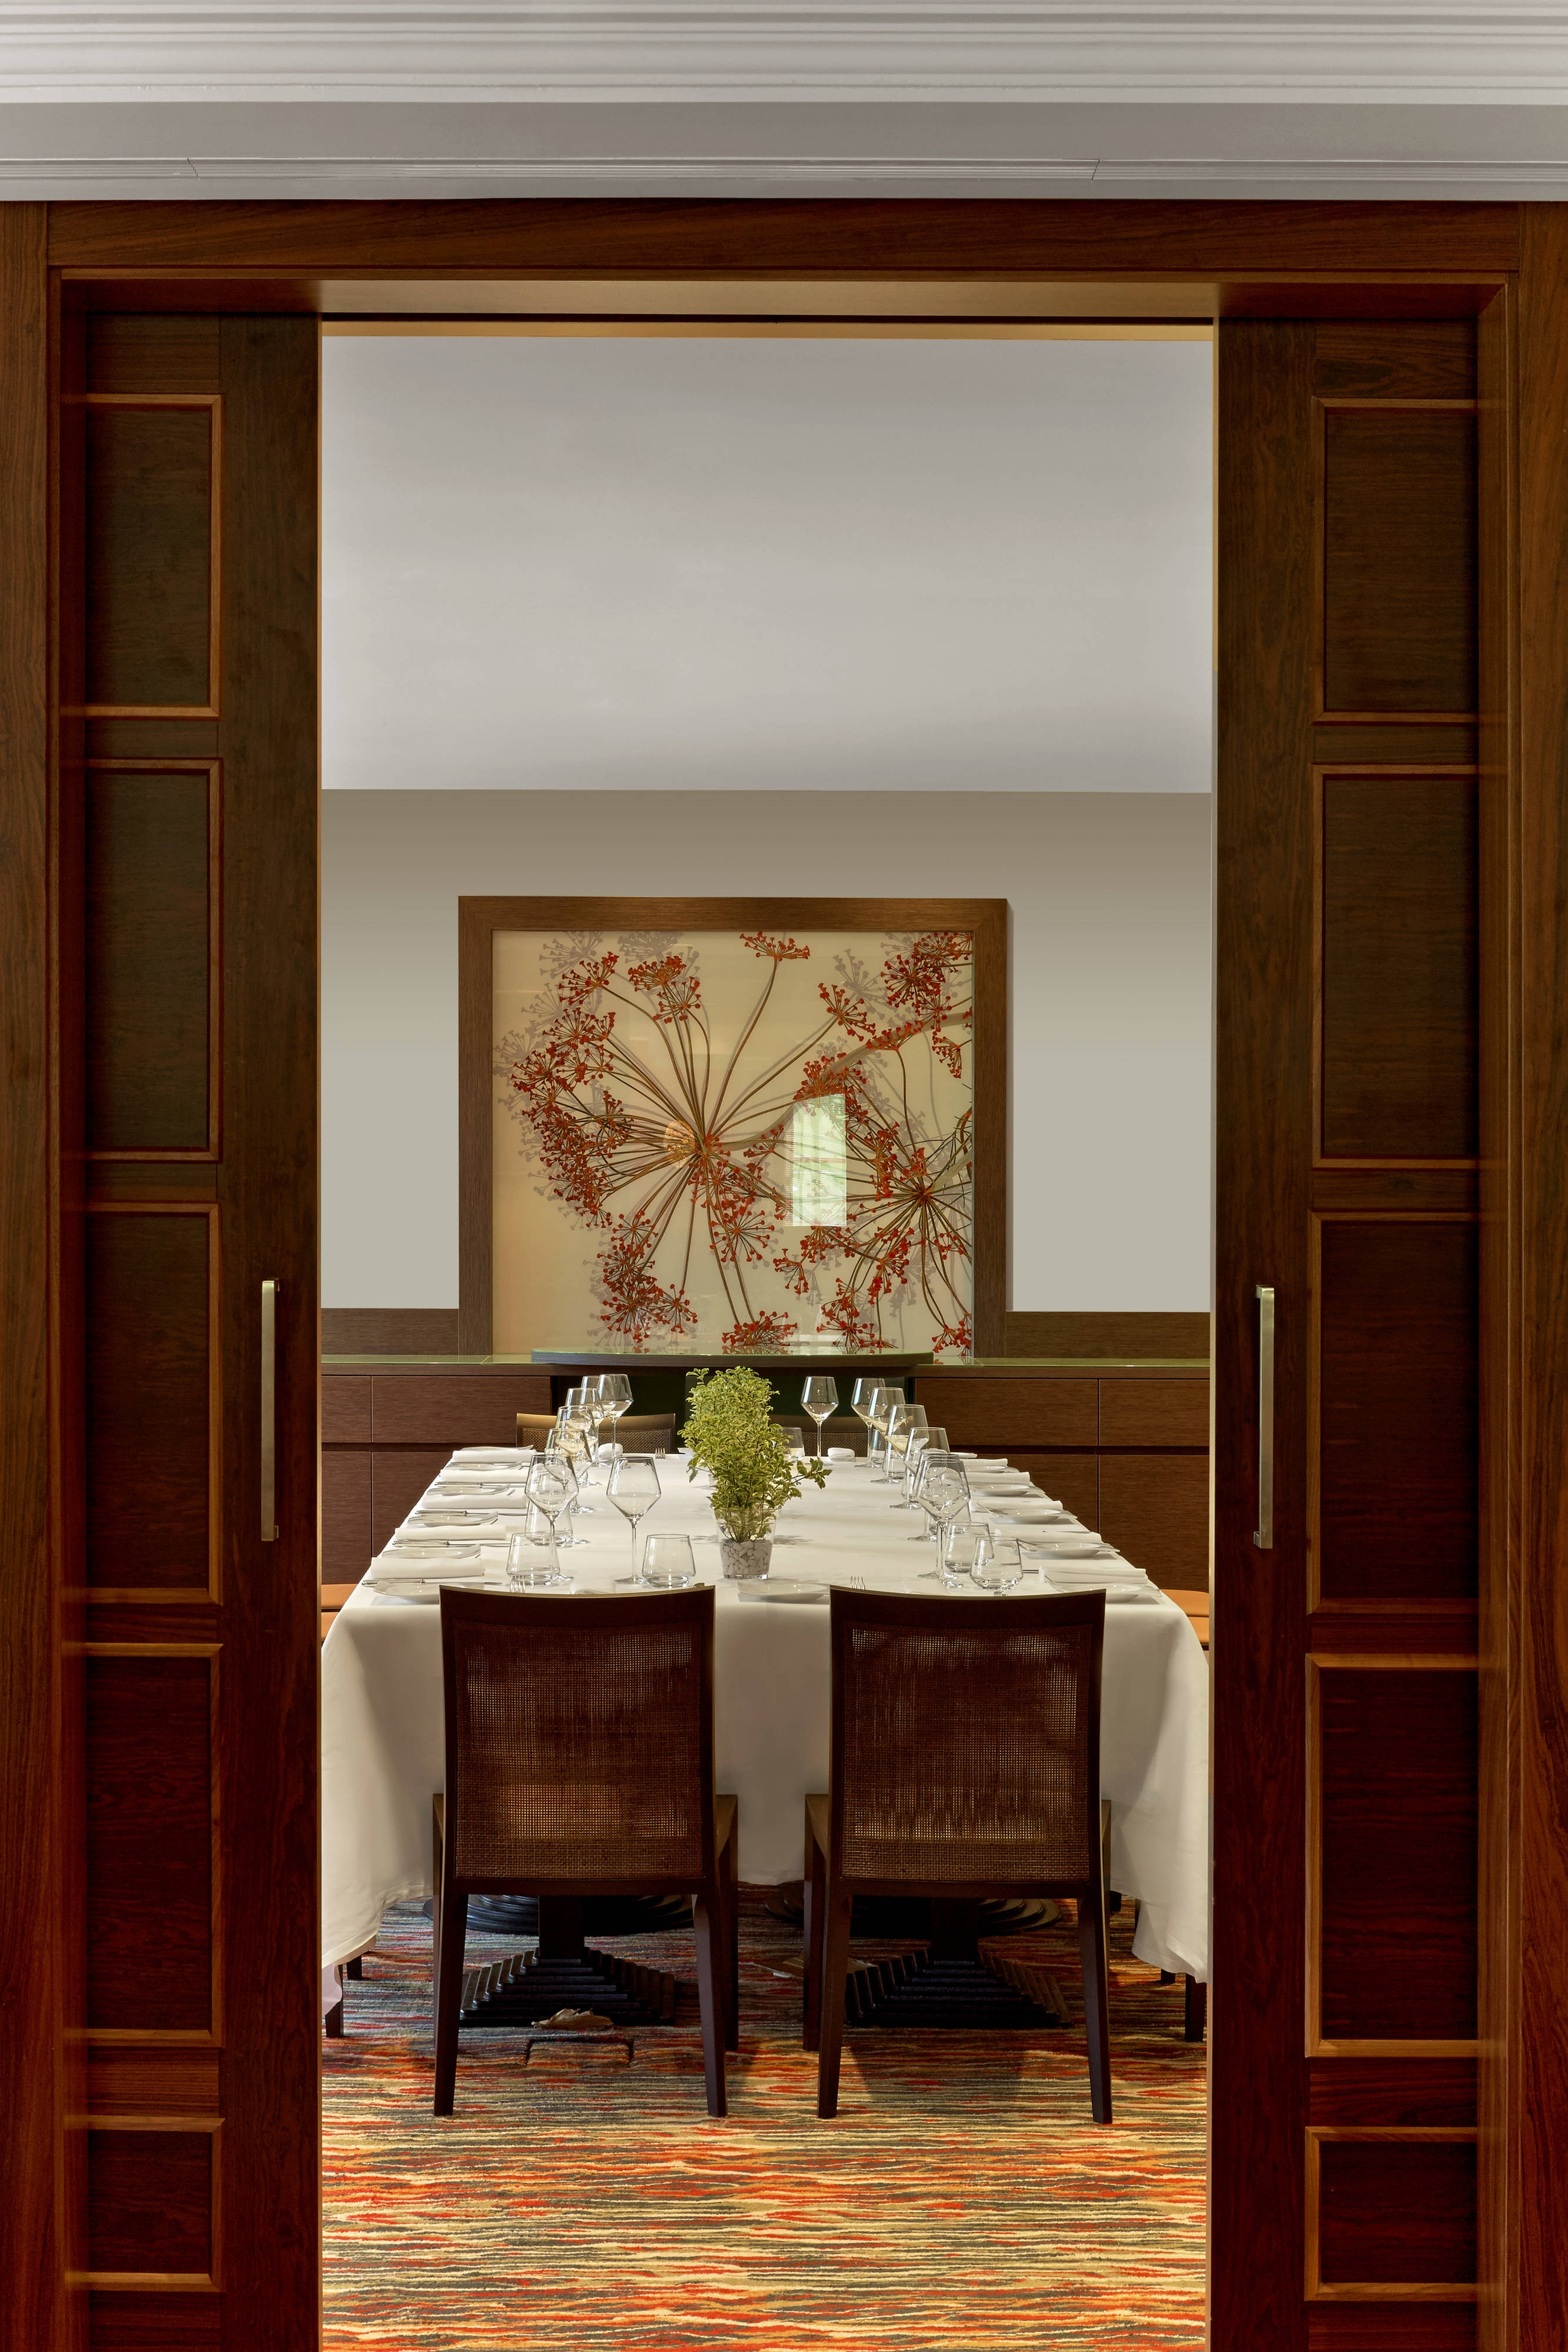 Private Dining Room S´Estaca